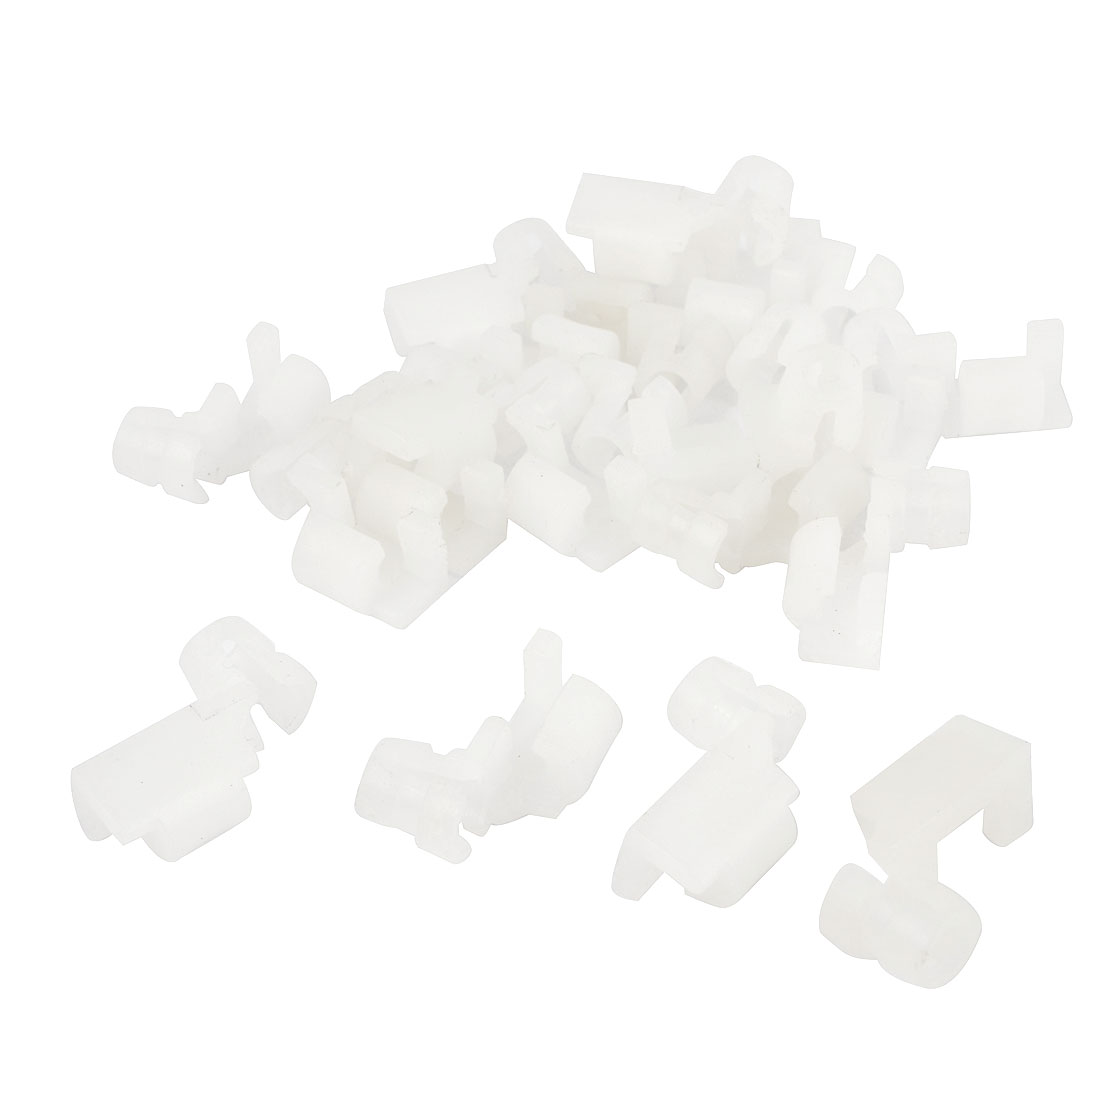 20 PCS 6mm Hole White Plastic Rivet Interior Trim Panel Car Door Retainer Clips